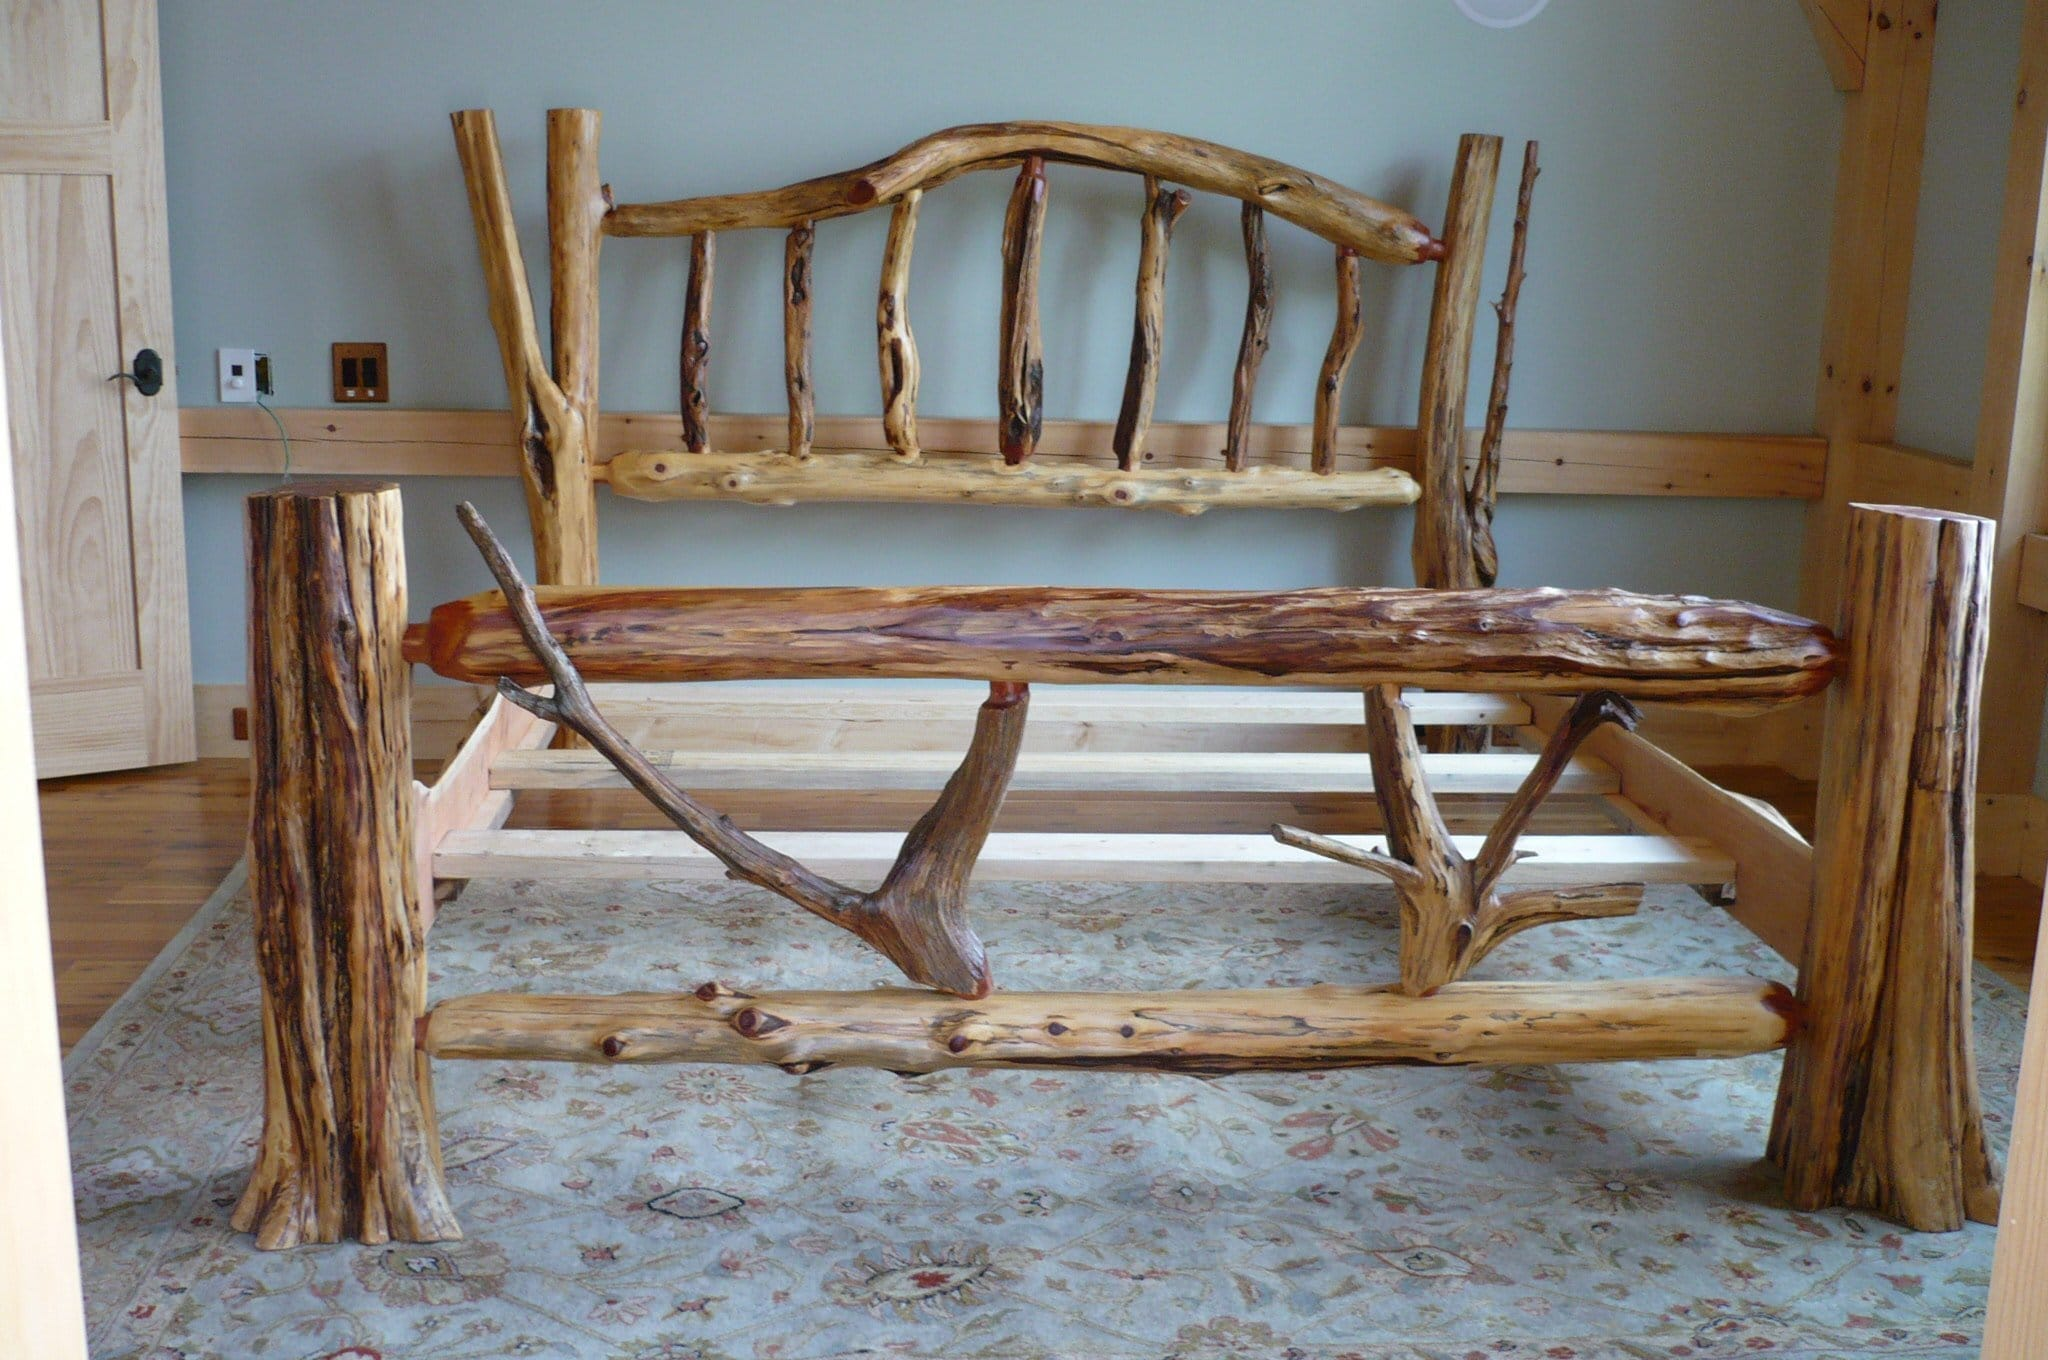 custom cedar log bed king or queen size each is a one of a kind creation by kelly maxwell